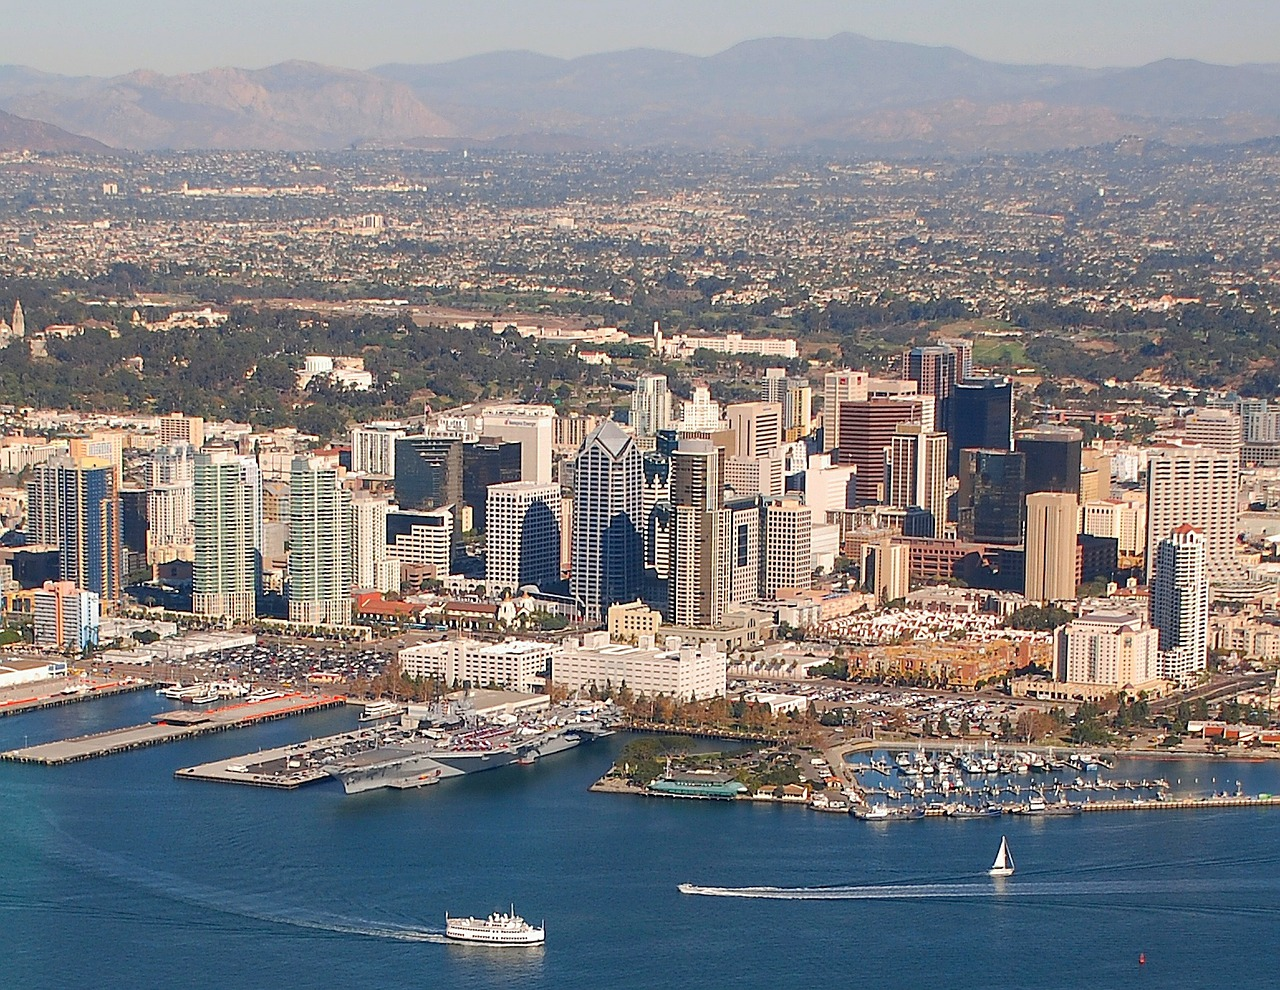 San Diego expected to be hottest Calif. housing market in 2020